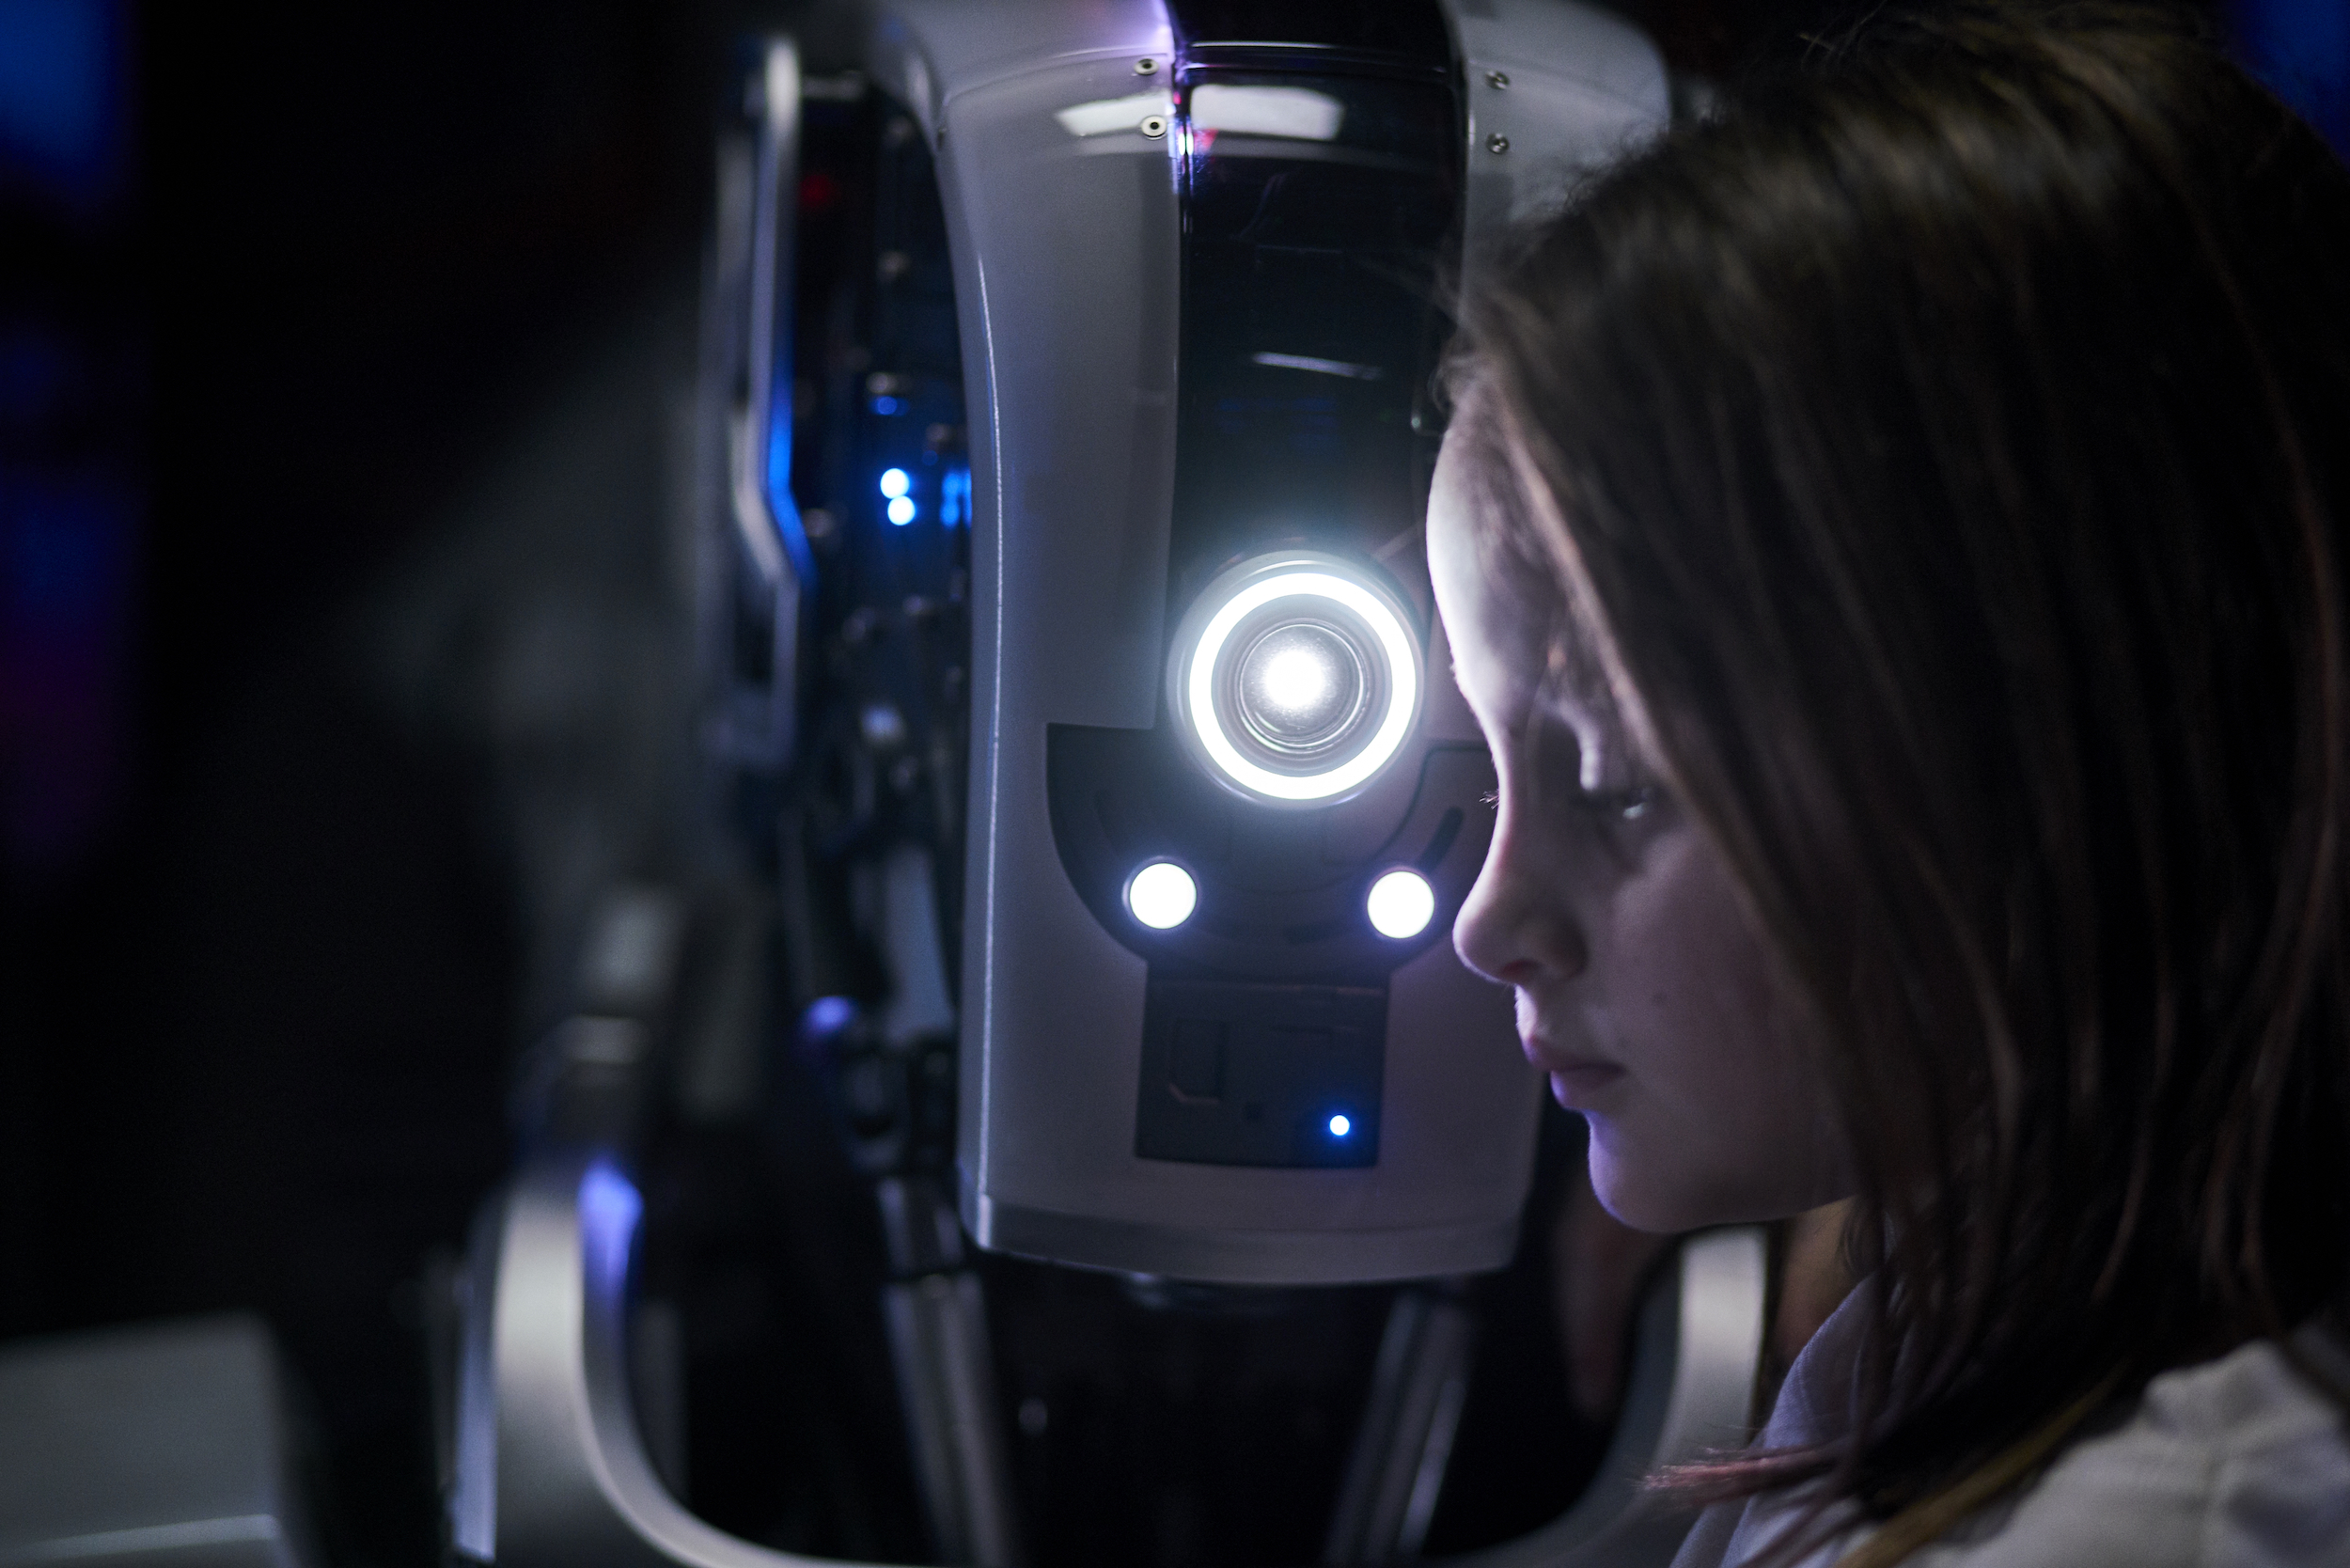 Netflix's I Am Mother is a slick take on the woman-vs-robot story